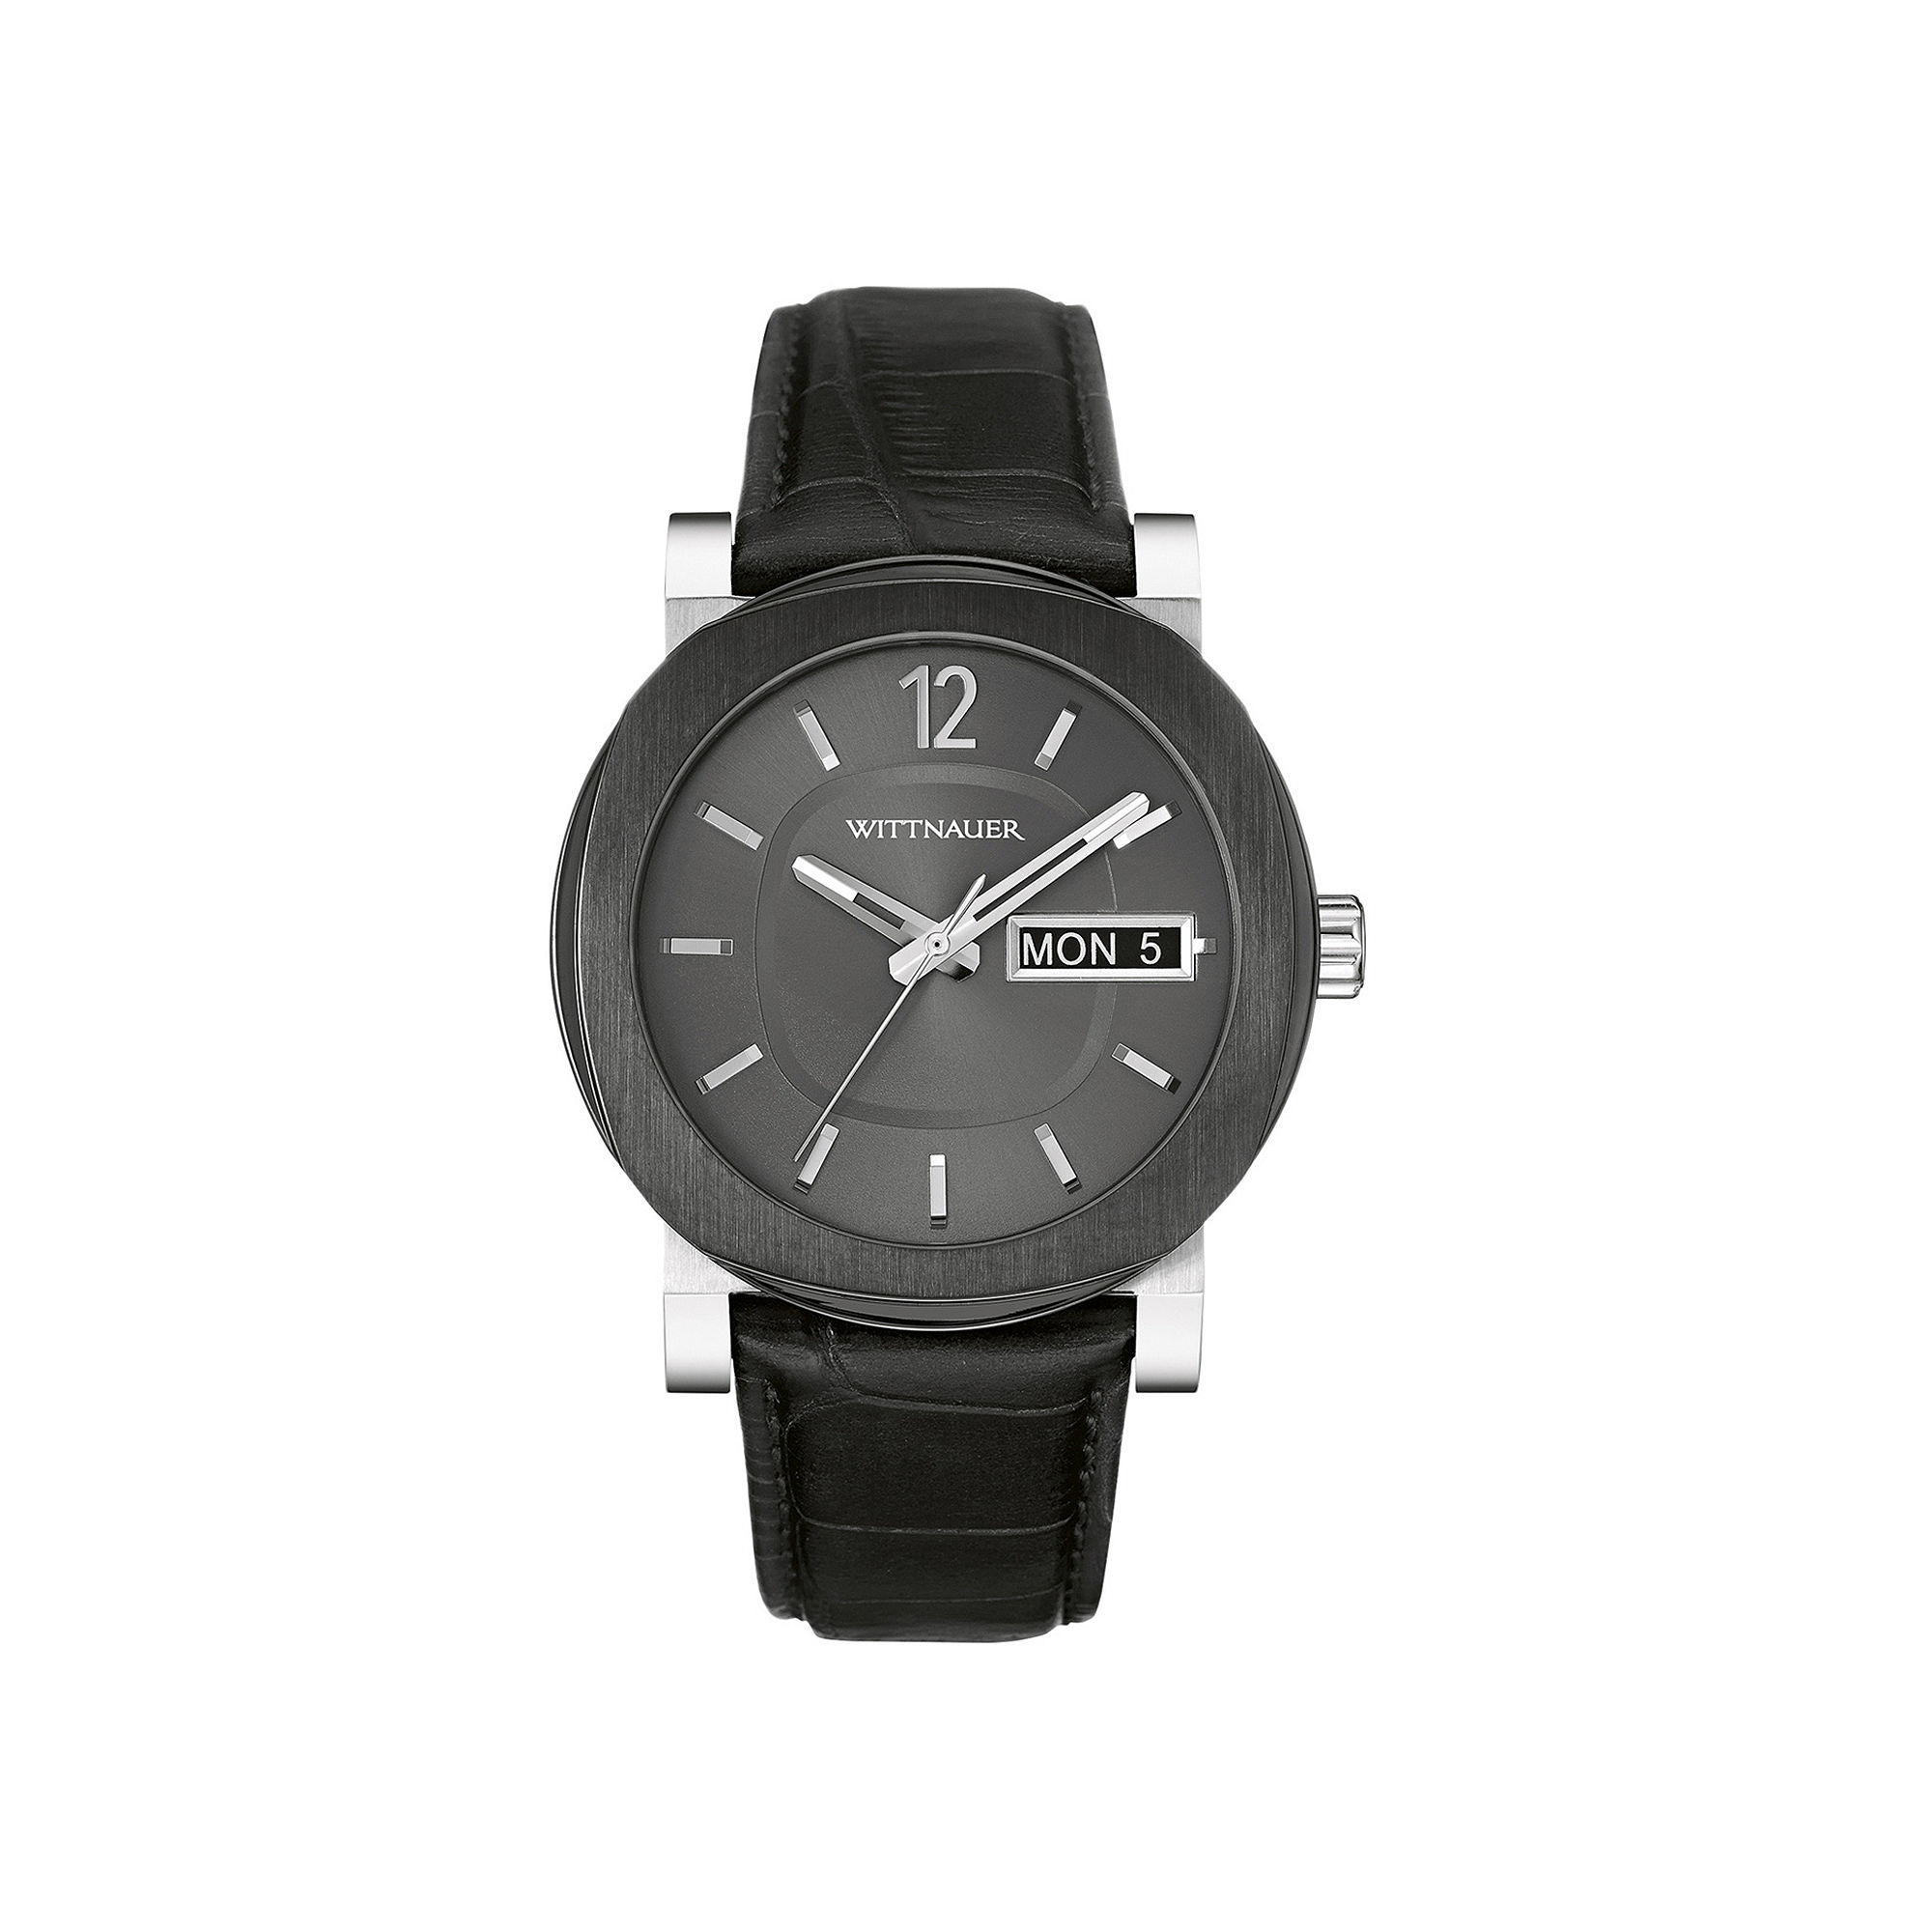 Wittnauer Mens Black Leather Strap Watch WN1000